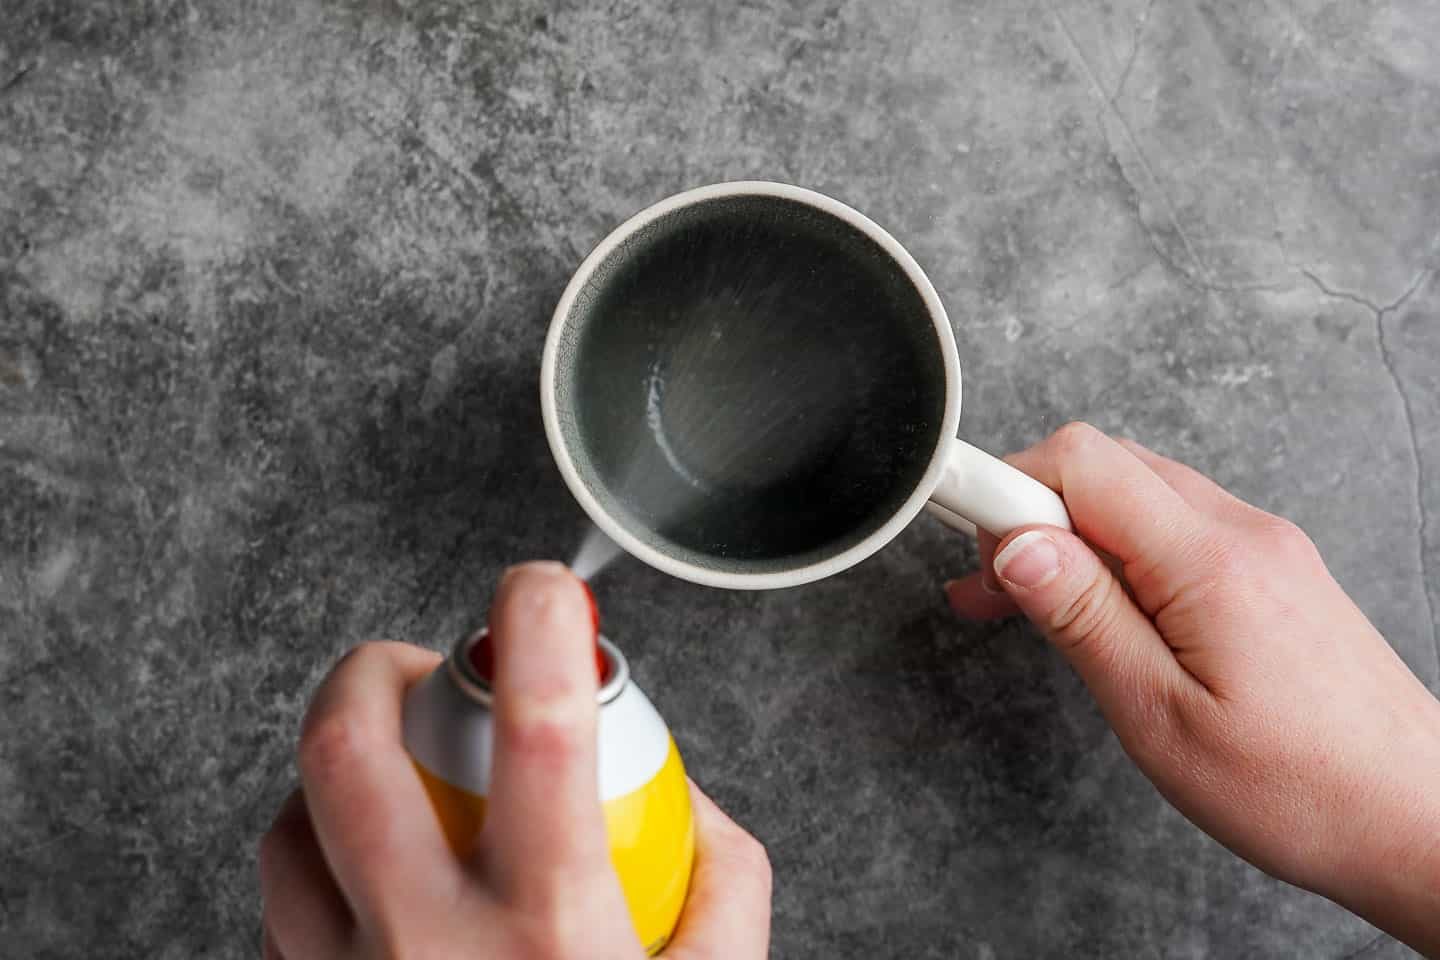 Spraying Mug with Nonstick Spray